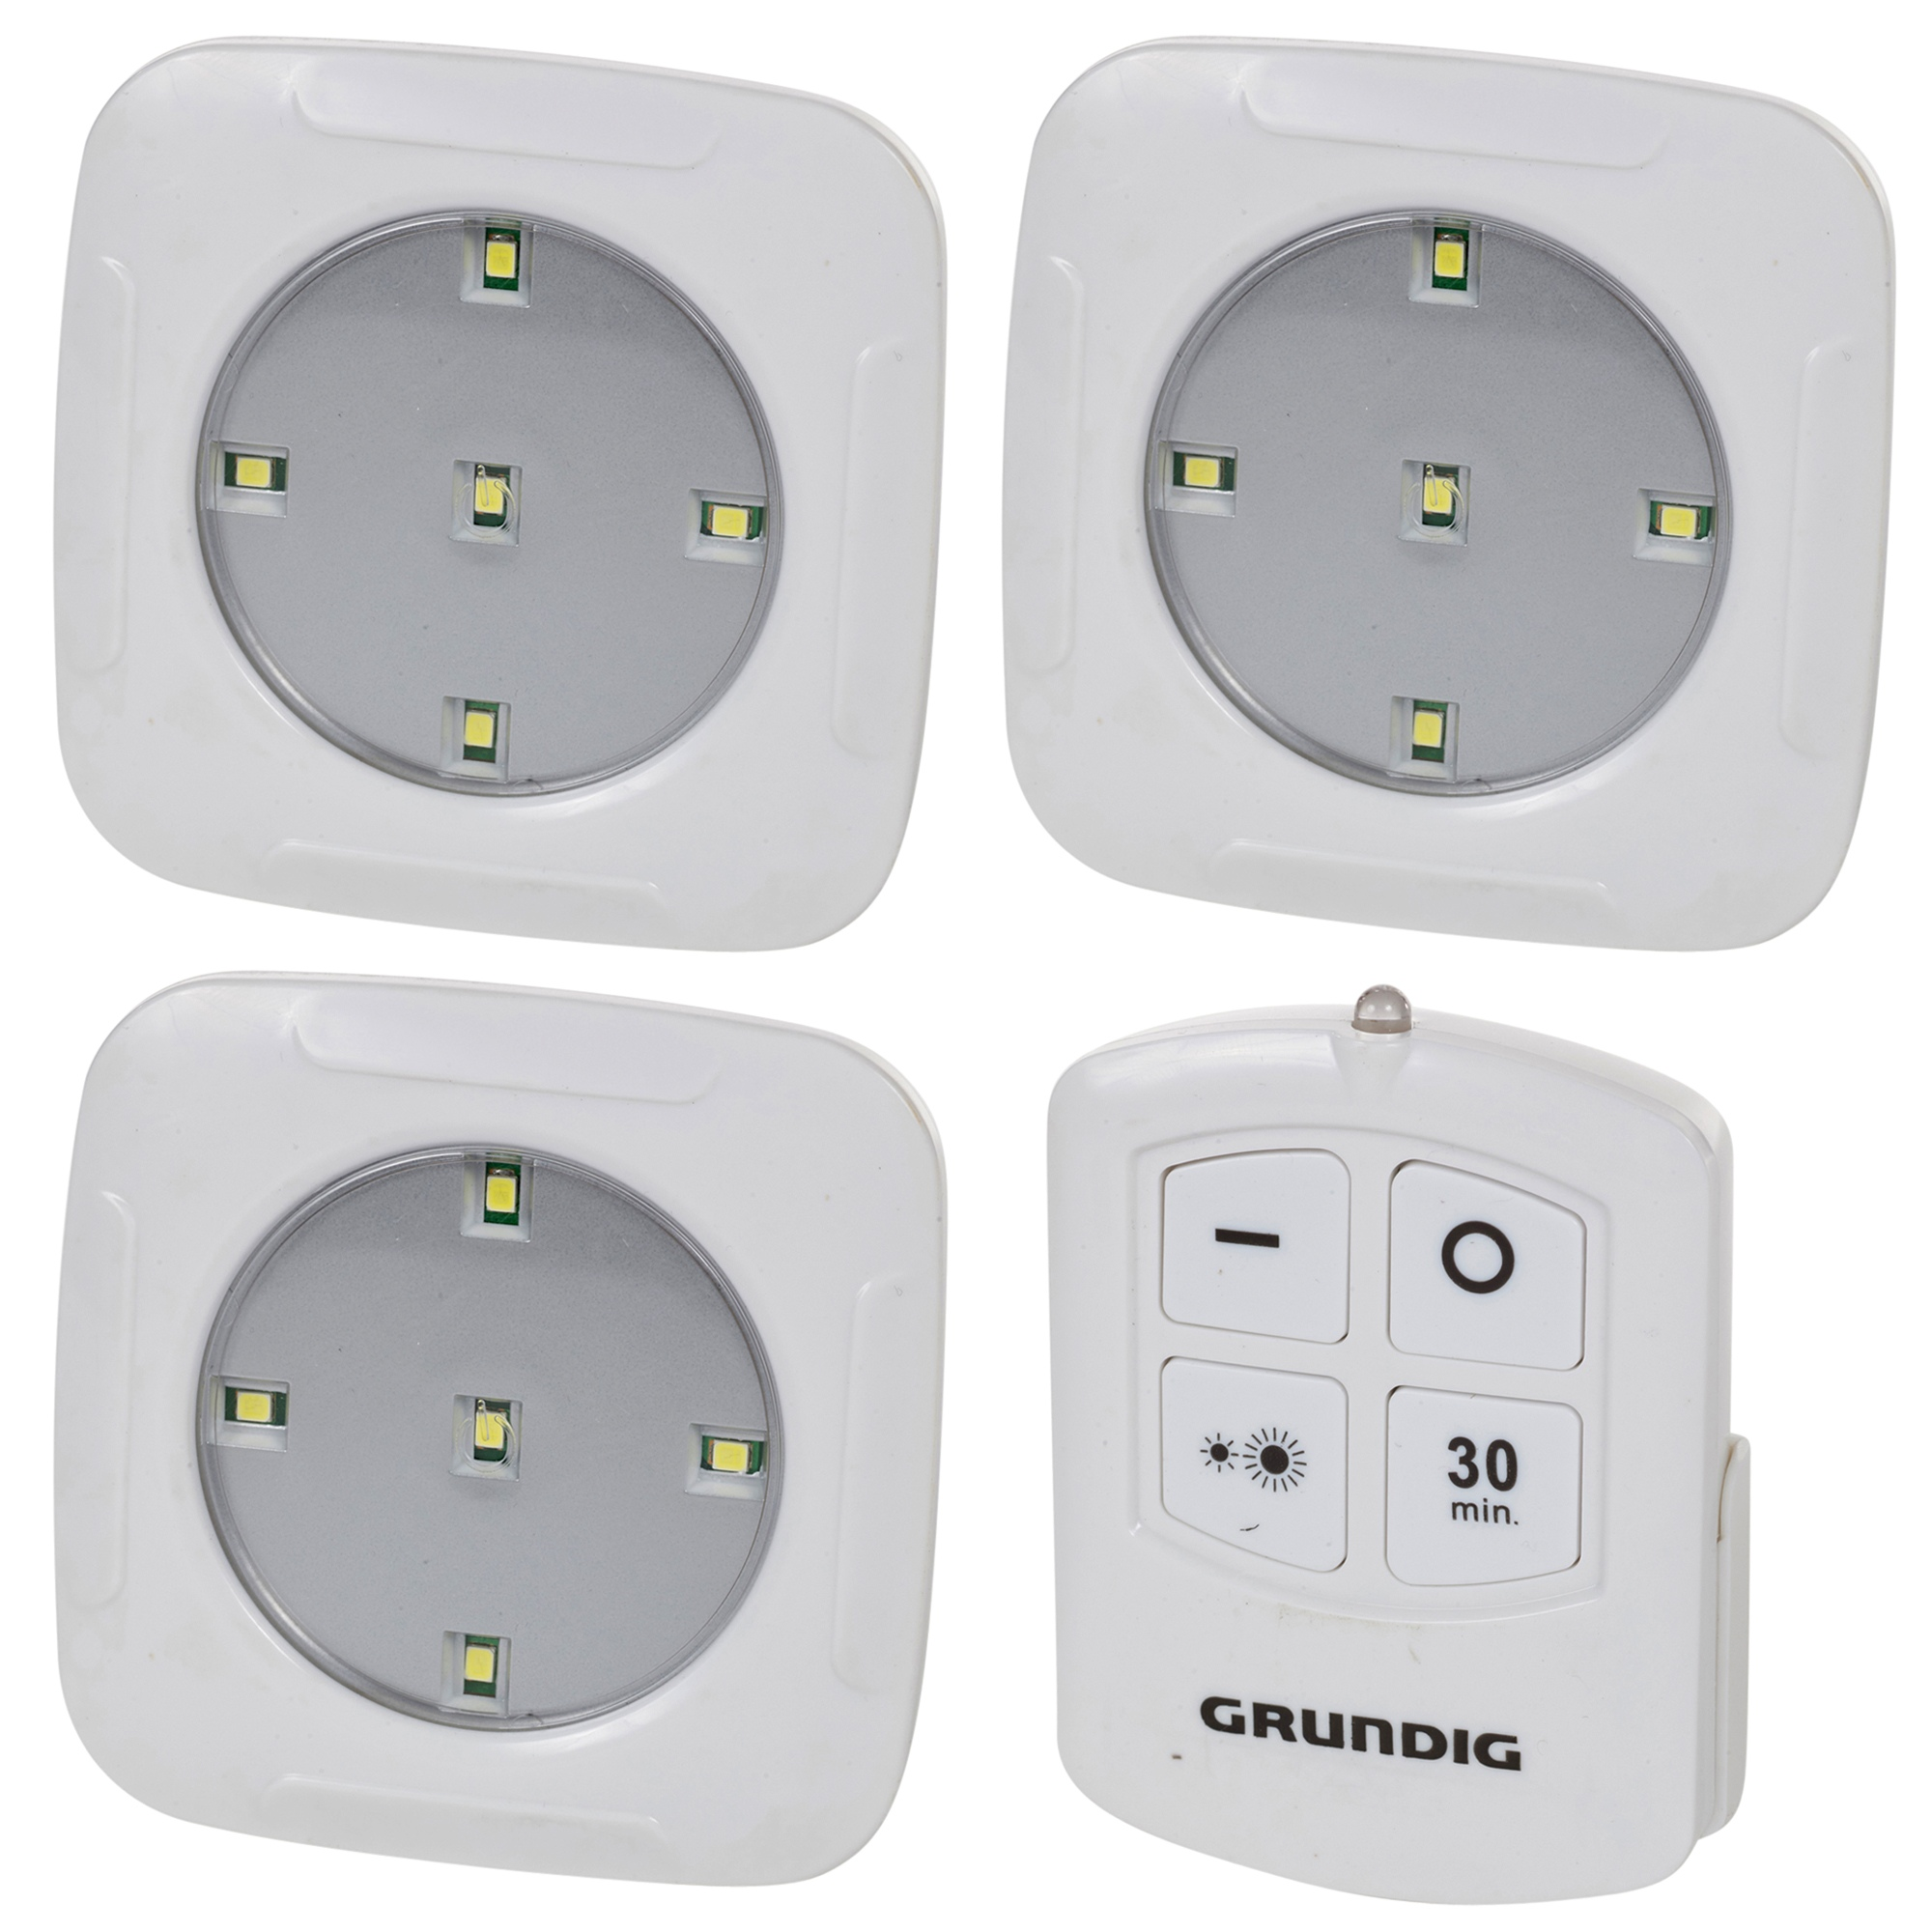 the latest 6e037 2450e Details about Grundig Remote Control Wall Ceiling Wireless LED Lights  Kitchen Bathroom Cabinet